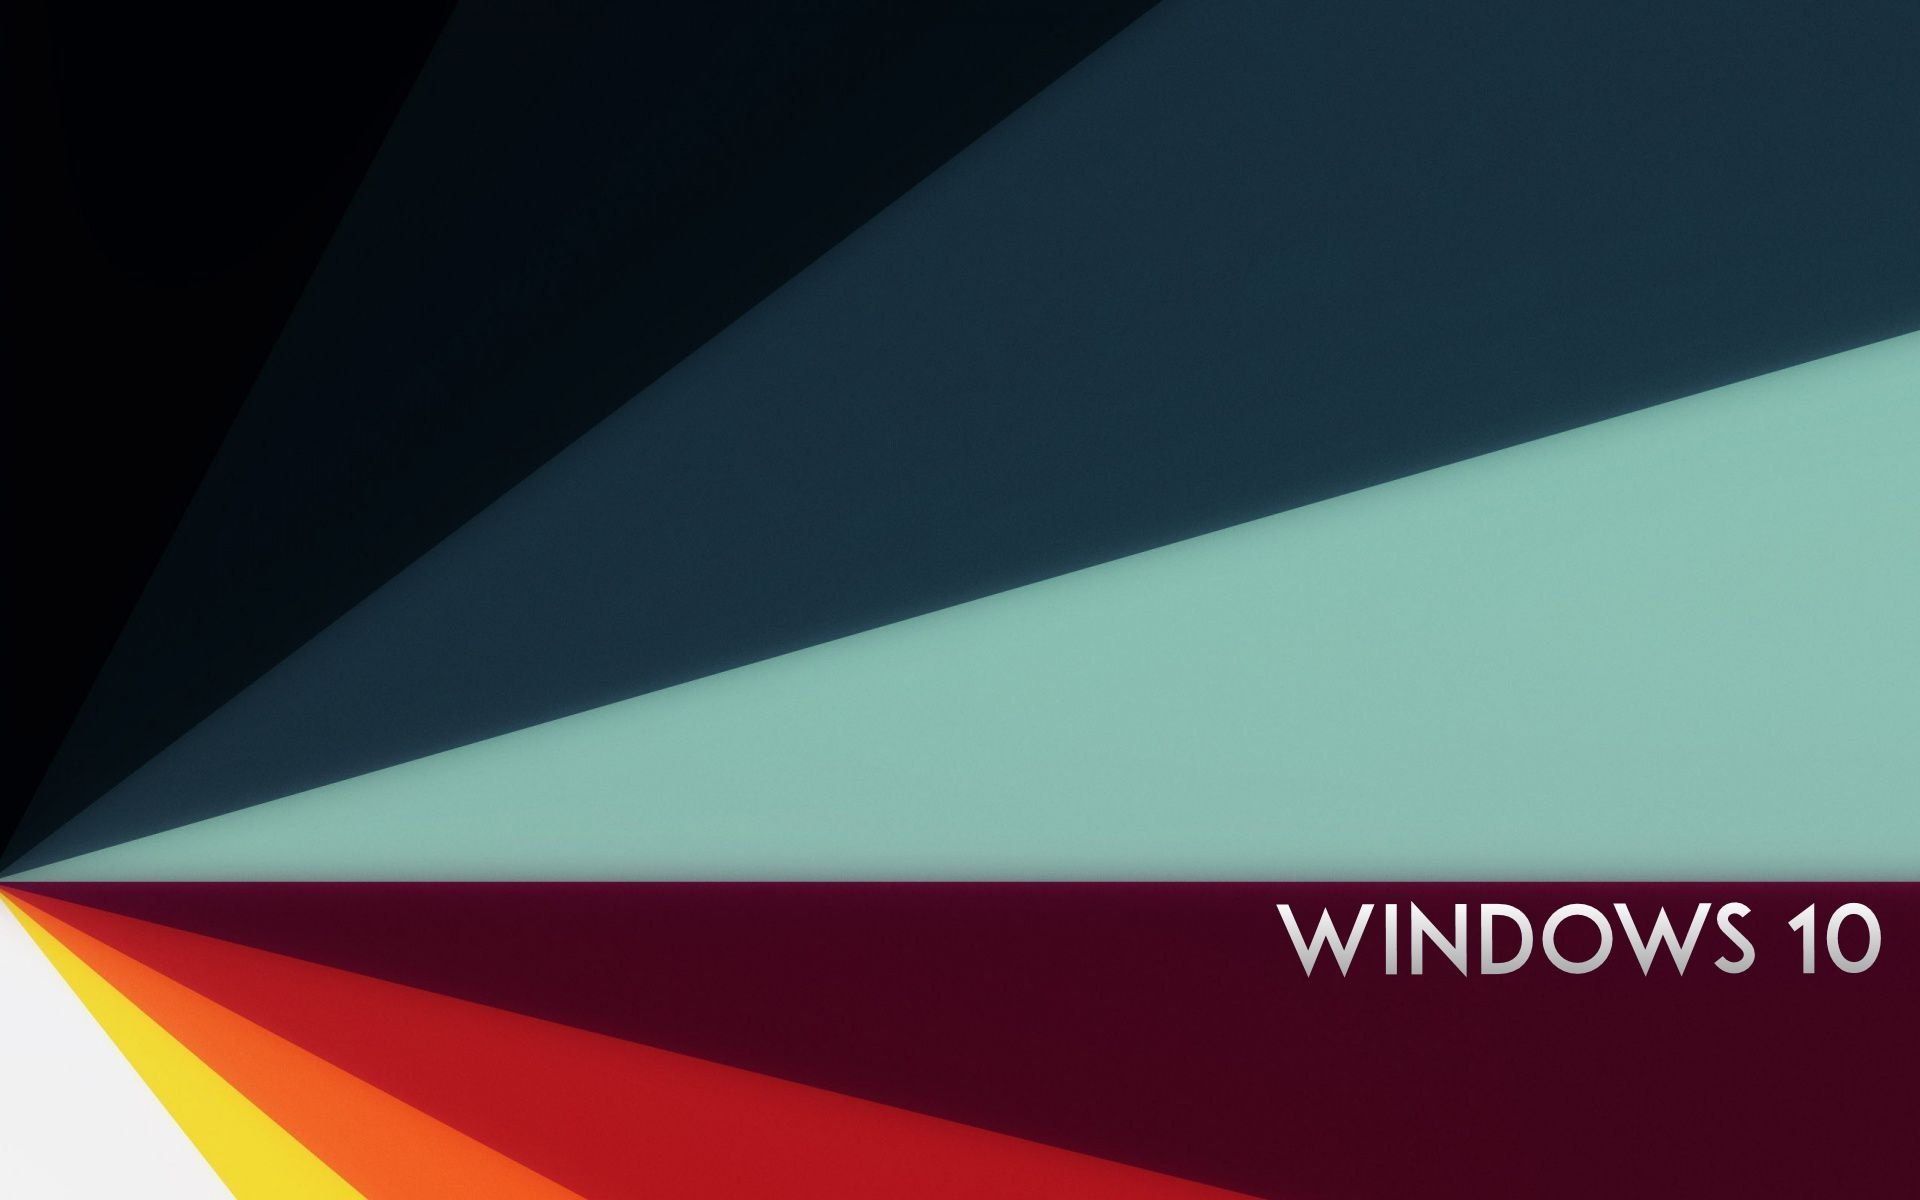 Wallpaper Windows 10 Abstract Background 1920x1200 Hd